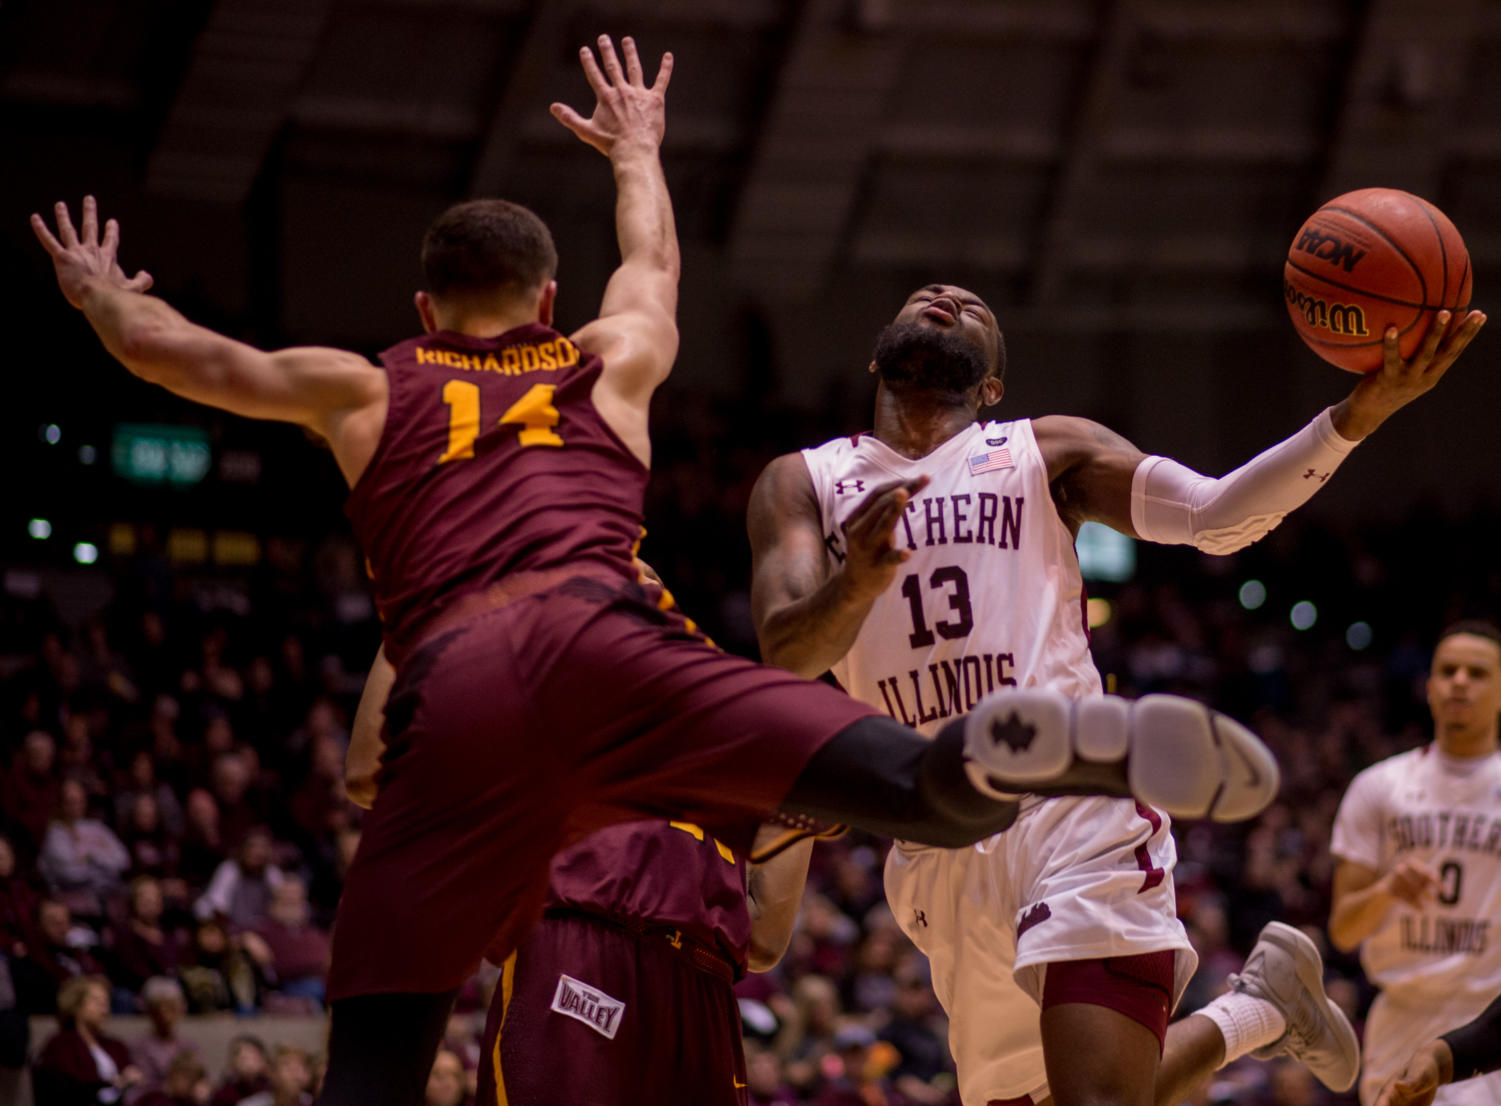 Junior guard Sean Lloyd Jr. keeps the ball from Loyola guard Ben Richardson Wednesday, Feb. 21, 2018, during the Loyola Rambler's 75-68 victory against the Southern Illinois University Salukis at SIU Arena. (Brian Munoz | @BrianMMunoz)